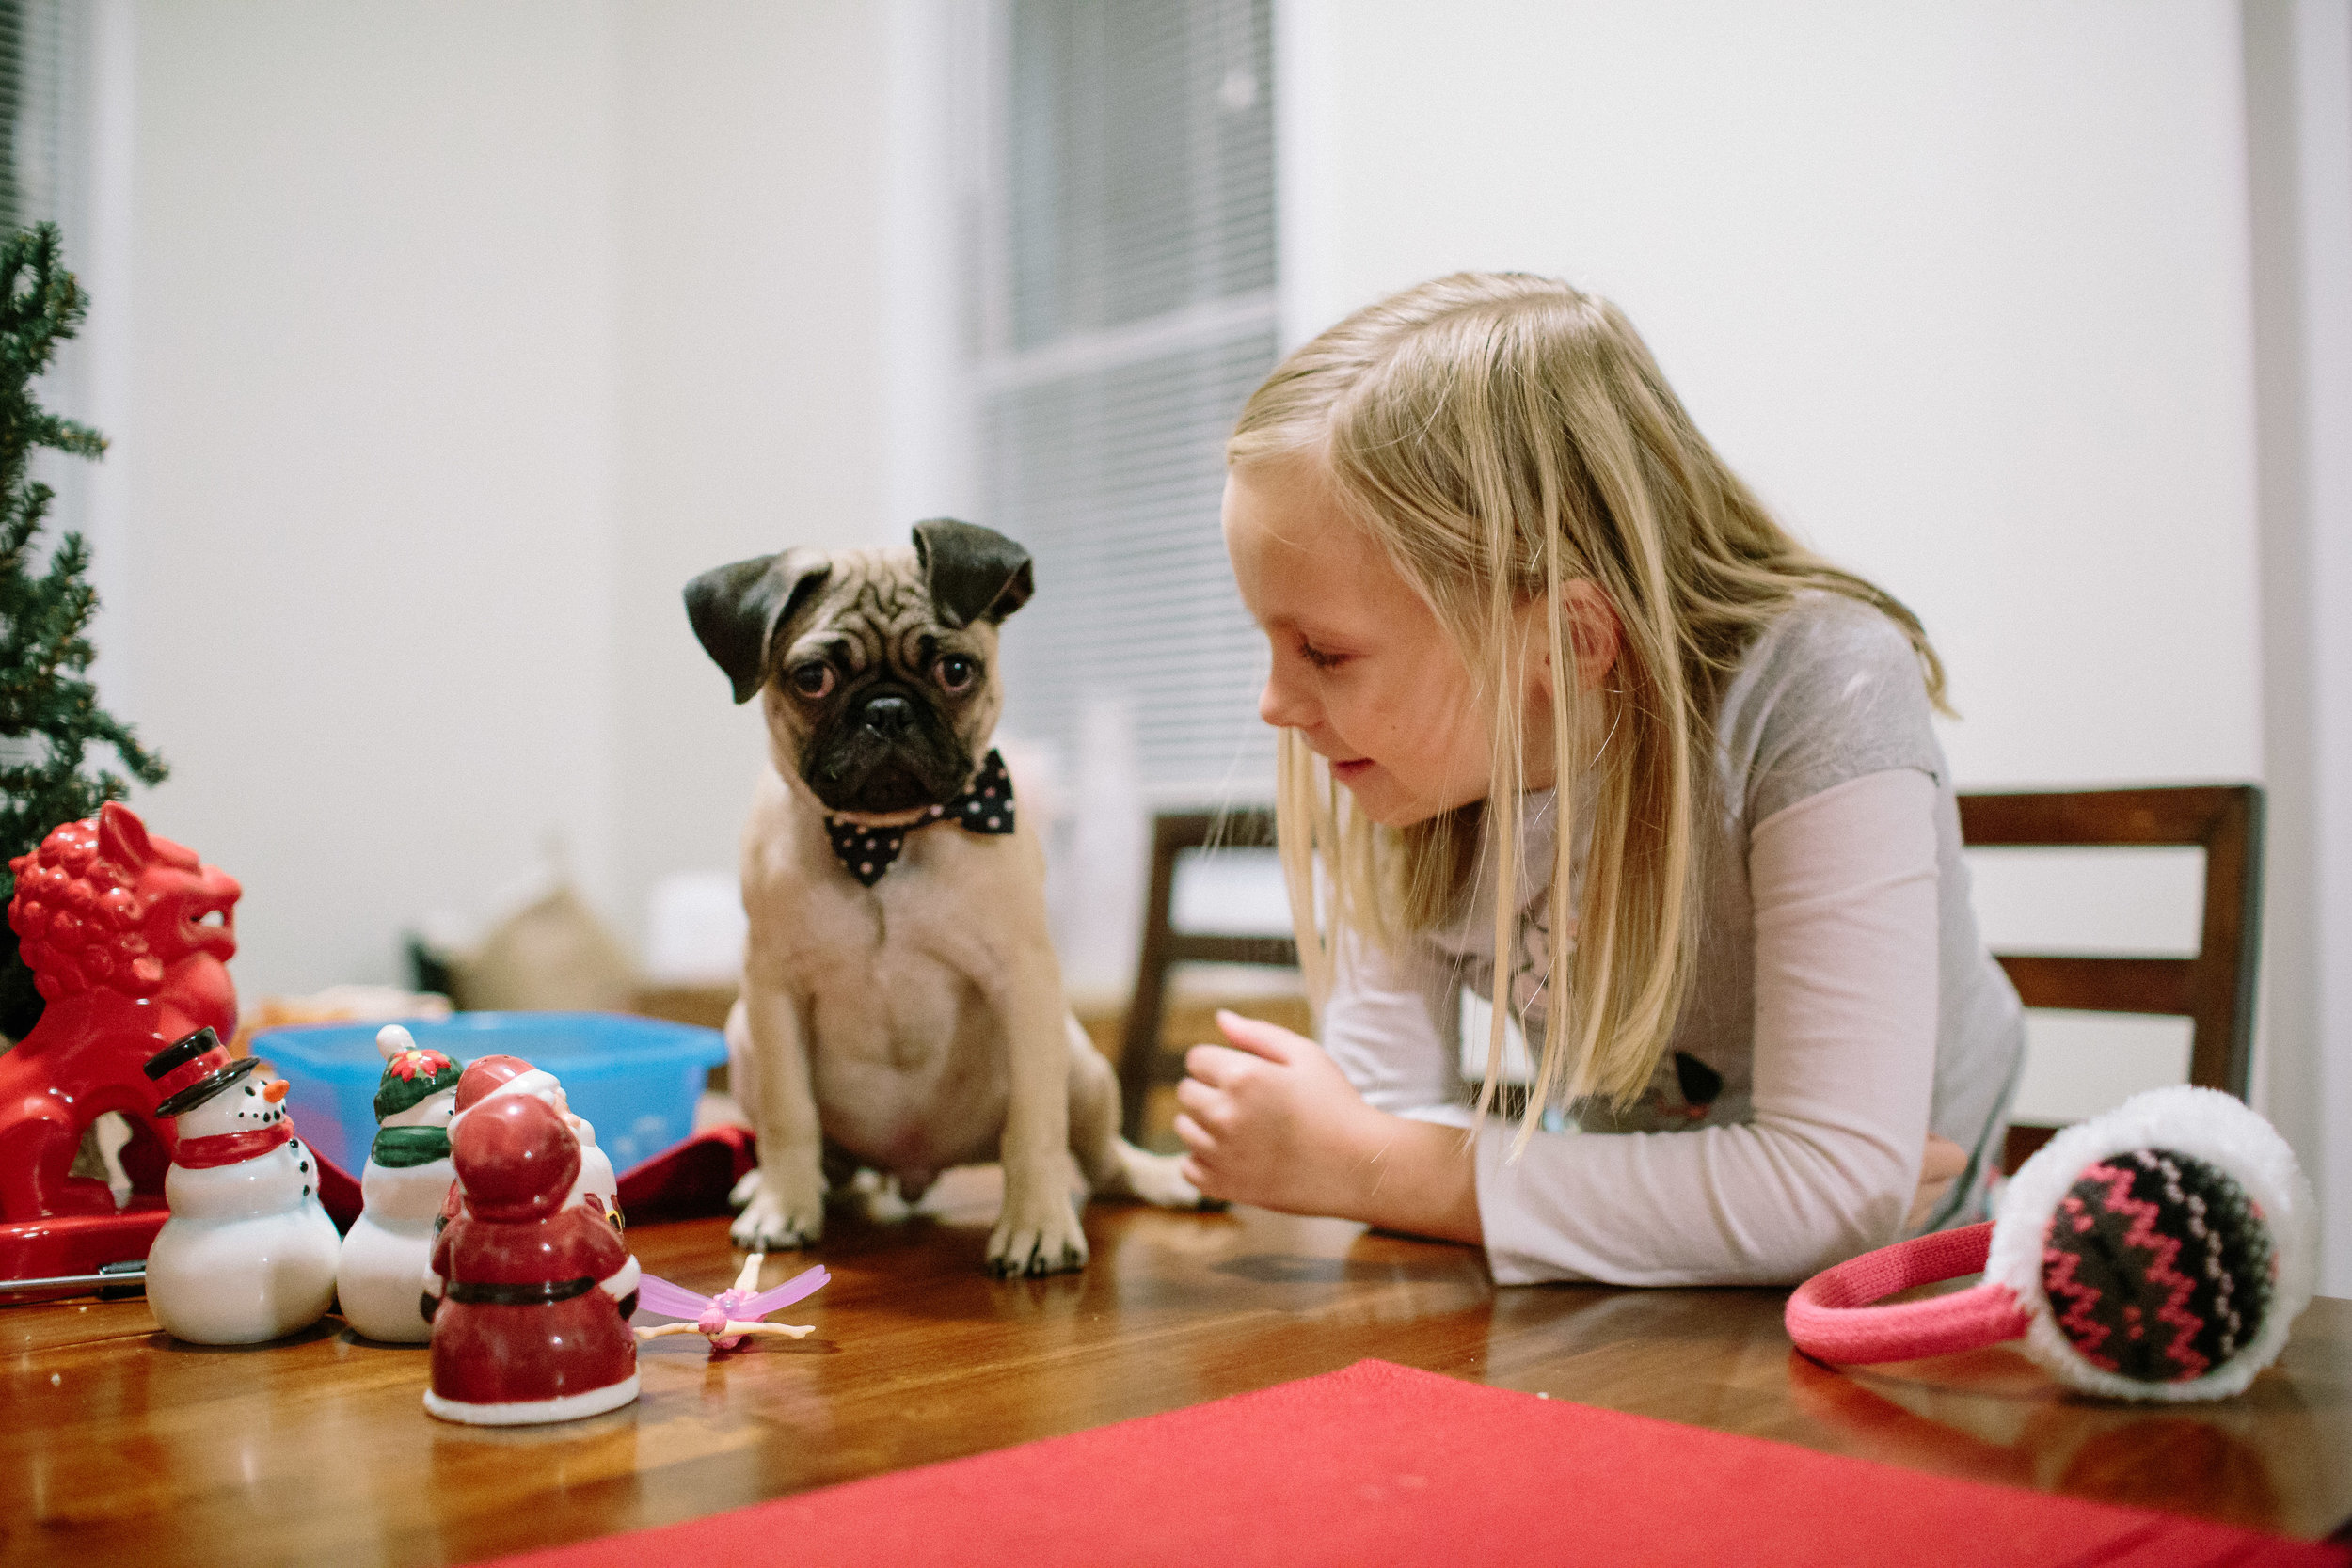 lifestyle photography of little girl and puppy playing on kitchen table